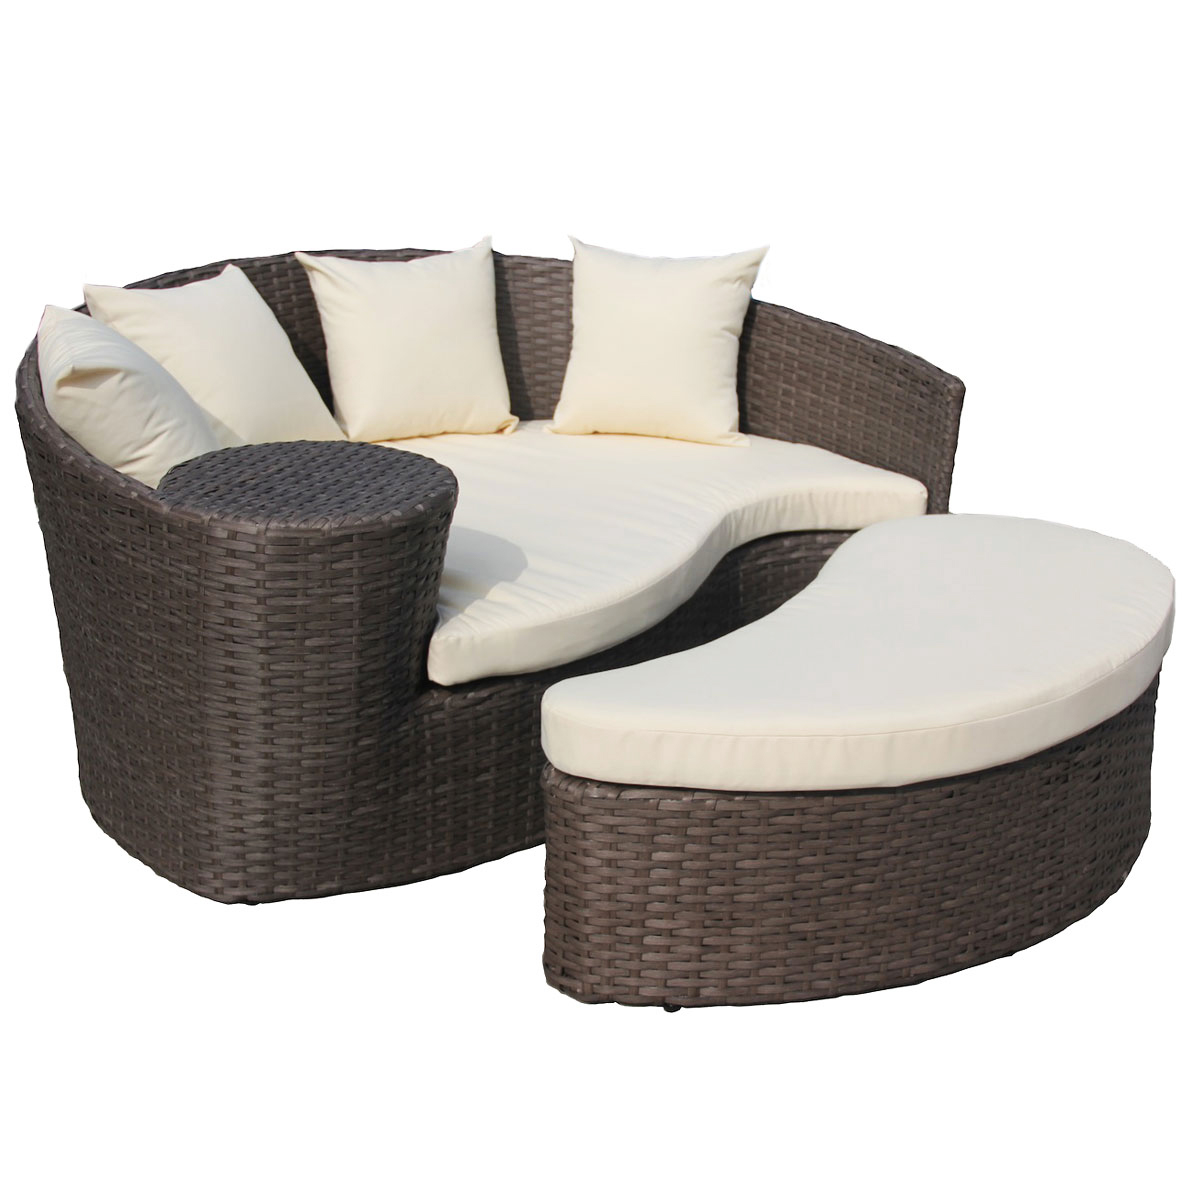 Rattan Daybed Sofa And Footstool Rattan Garden Furniture